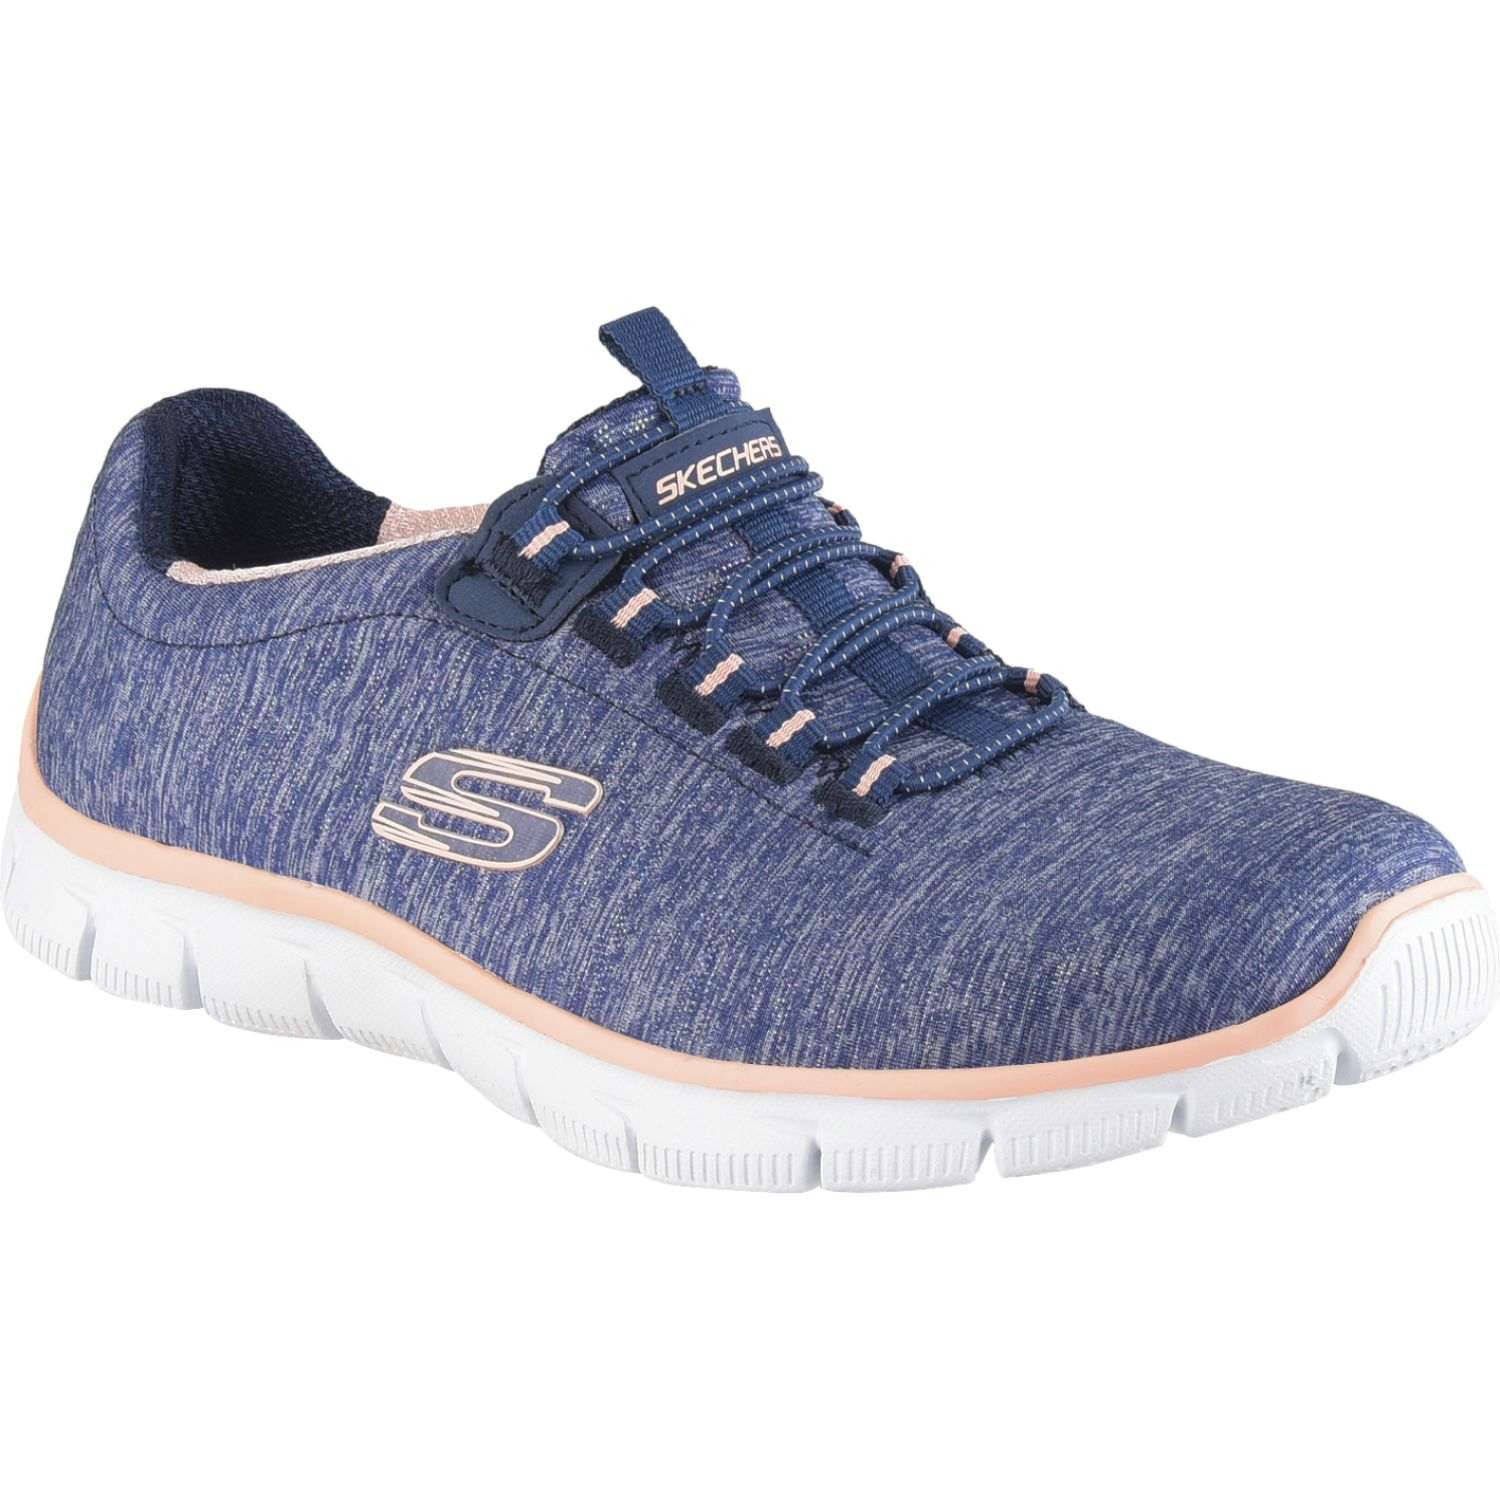 Skechers empire - see ya NAVY / CORAL Walking